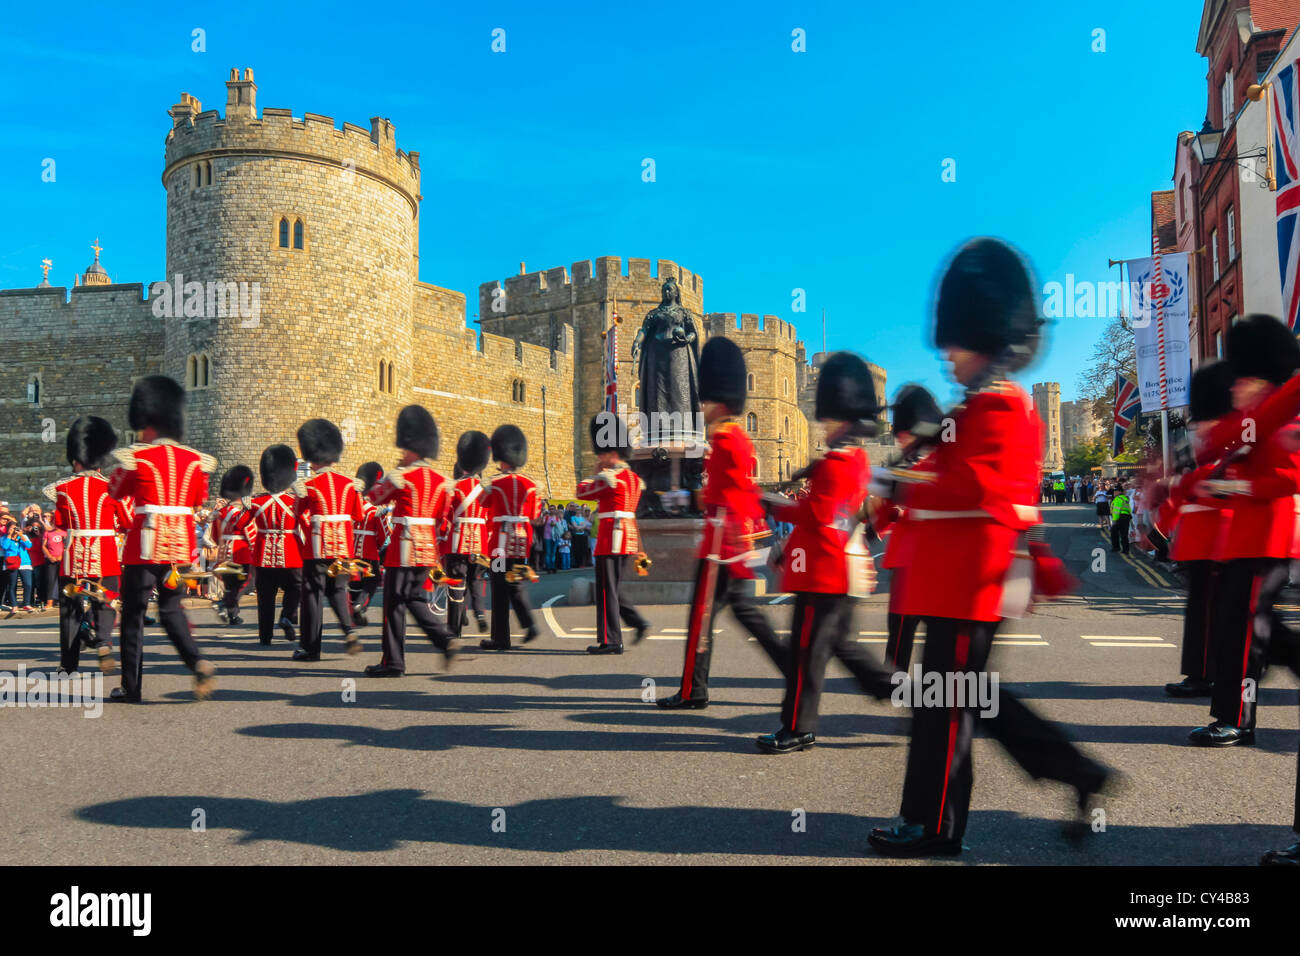 Windsor Castle, Windsor, Berkshire, UK - Stock Image